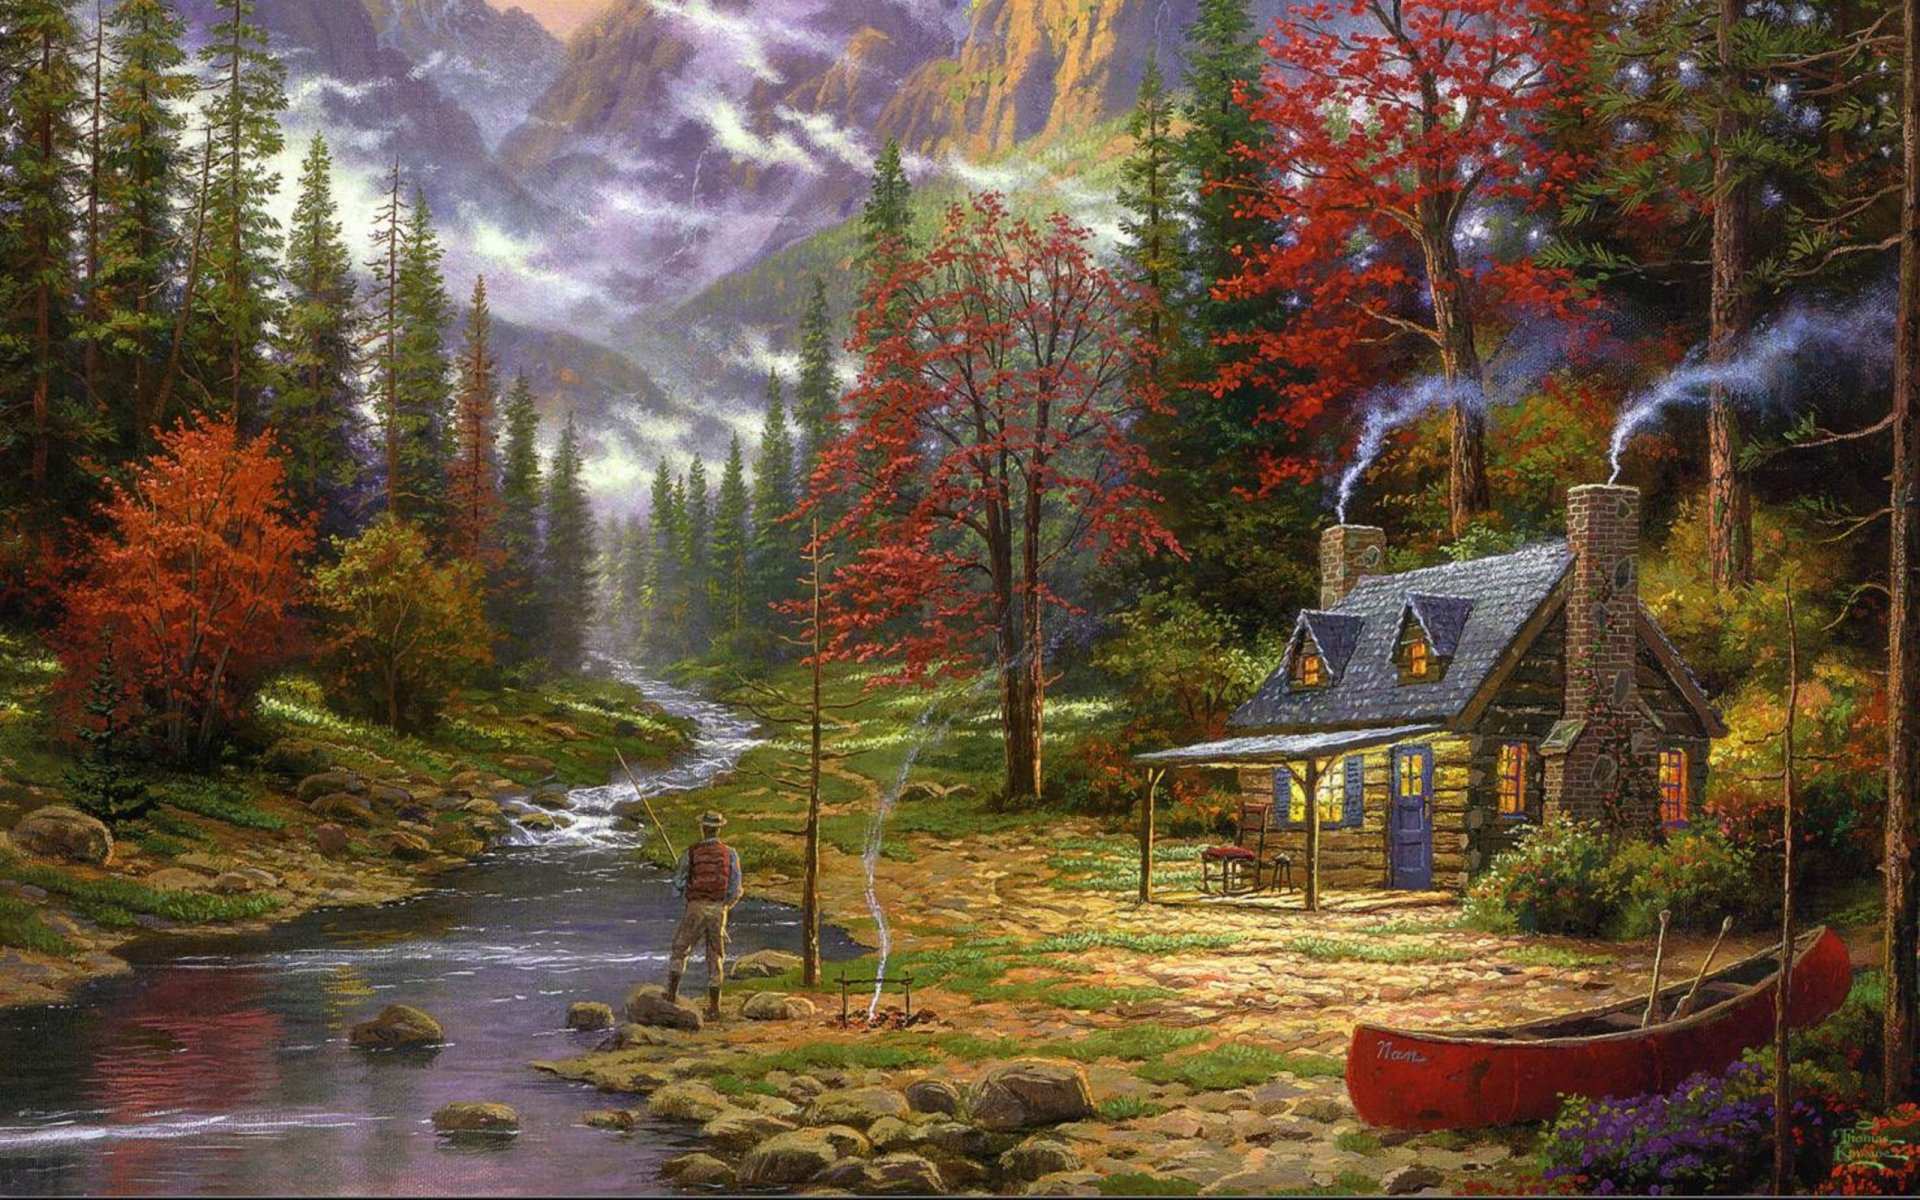 thomas kinkade the good life painting mountain river a fisherman forest spruce house chalet hut boat pattern picture pictures art